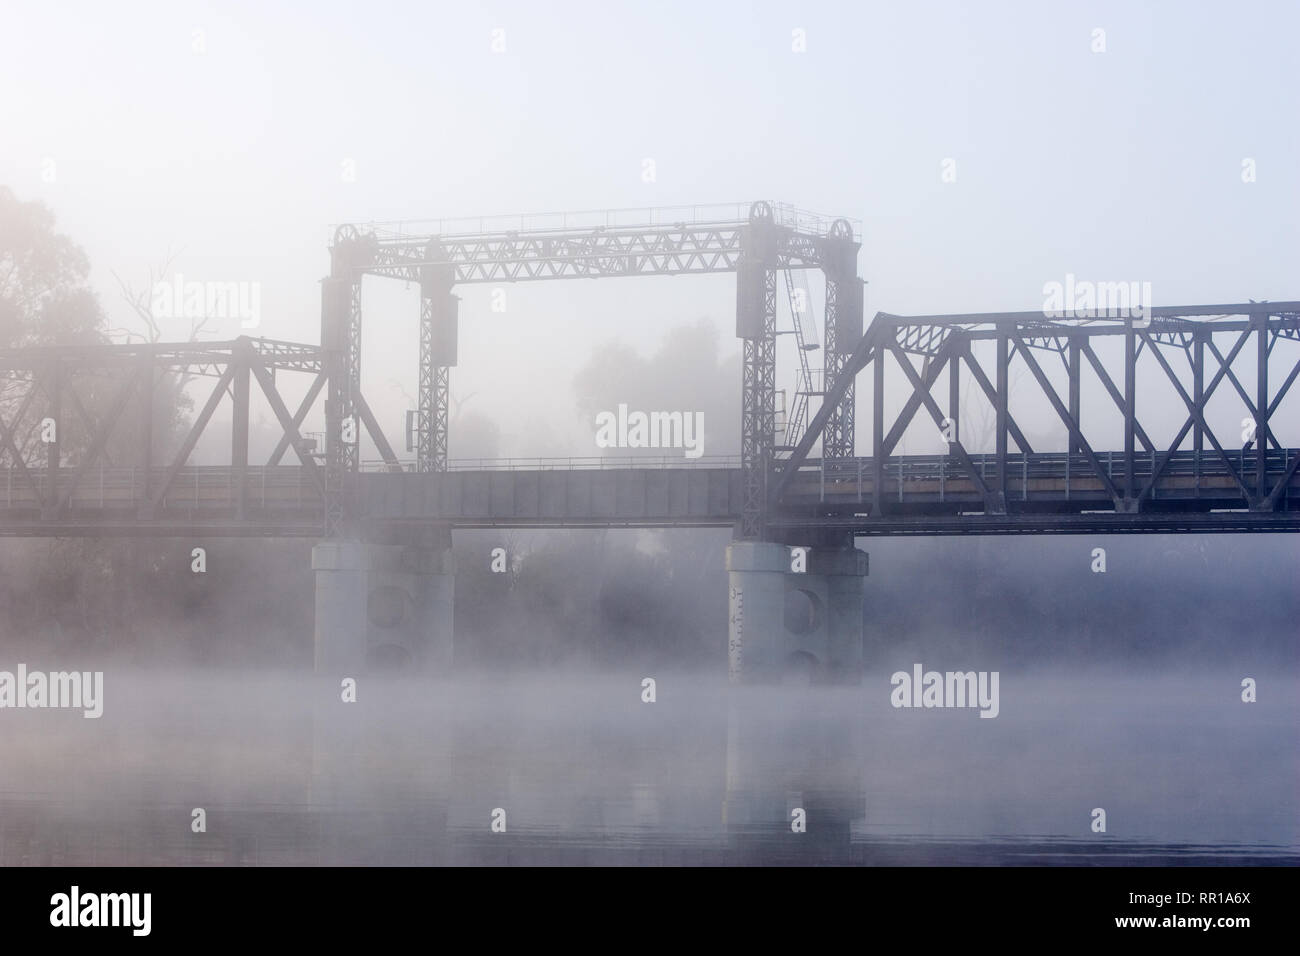 Old lift-span bridge over the Murray River, down stream from Mildura, photographed on a foggy winters morning, built in 1928. Stock Photo